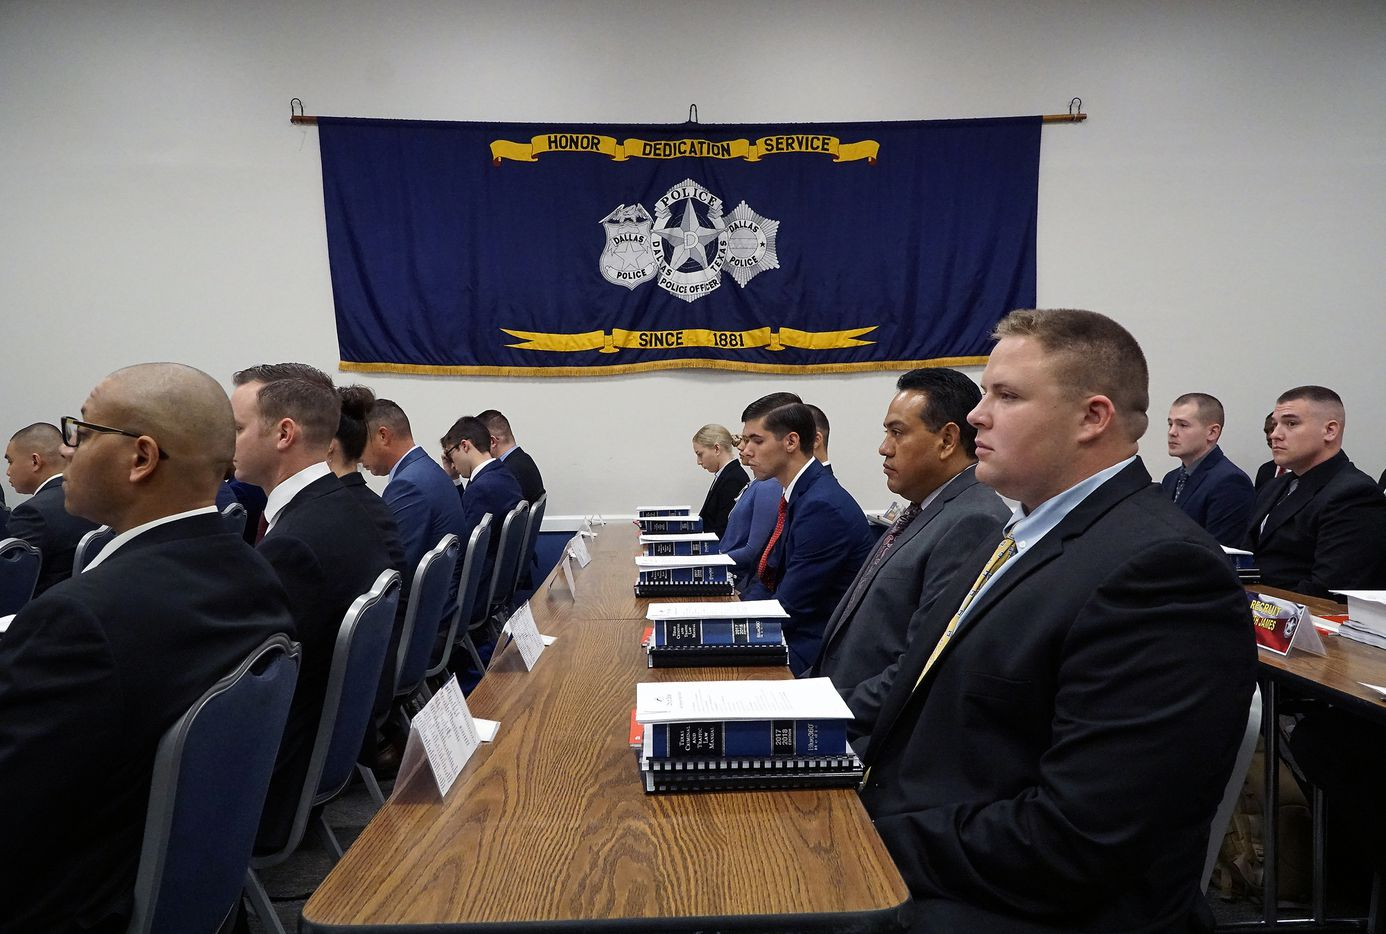 Class 368, the largest recruit class in DPD history, began their training at the Dallas Police Basic Academy in Dallas, Texas on Wednesday, September 18, 2019.